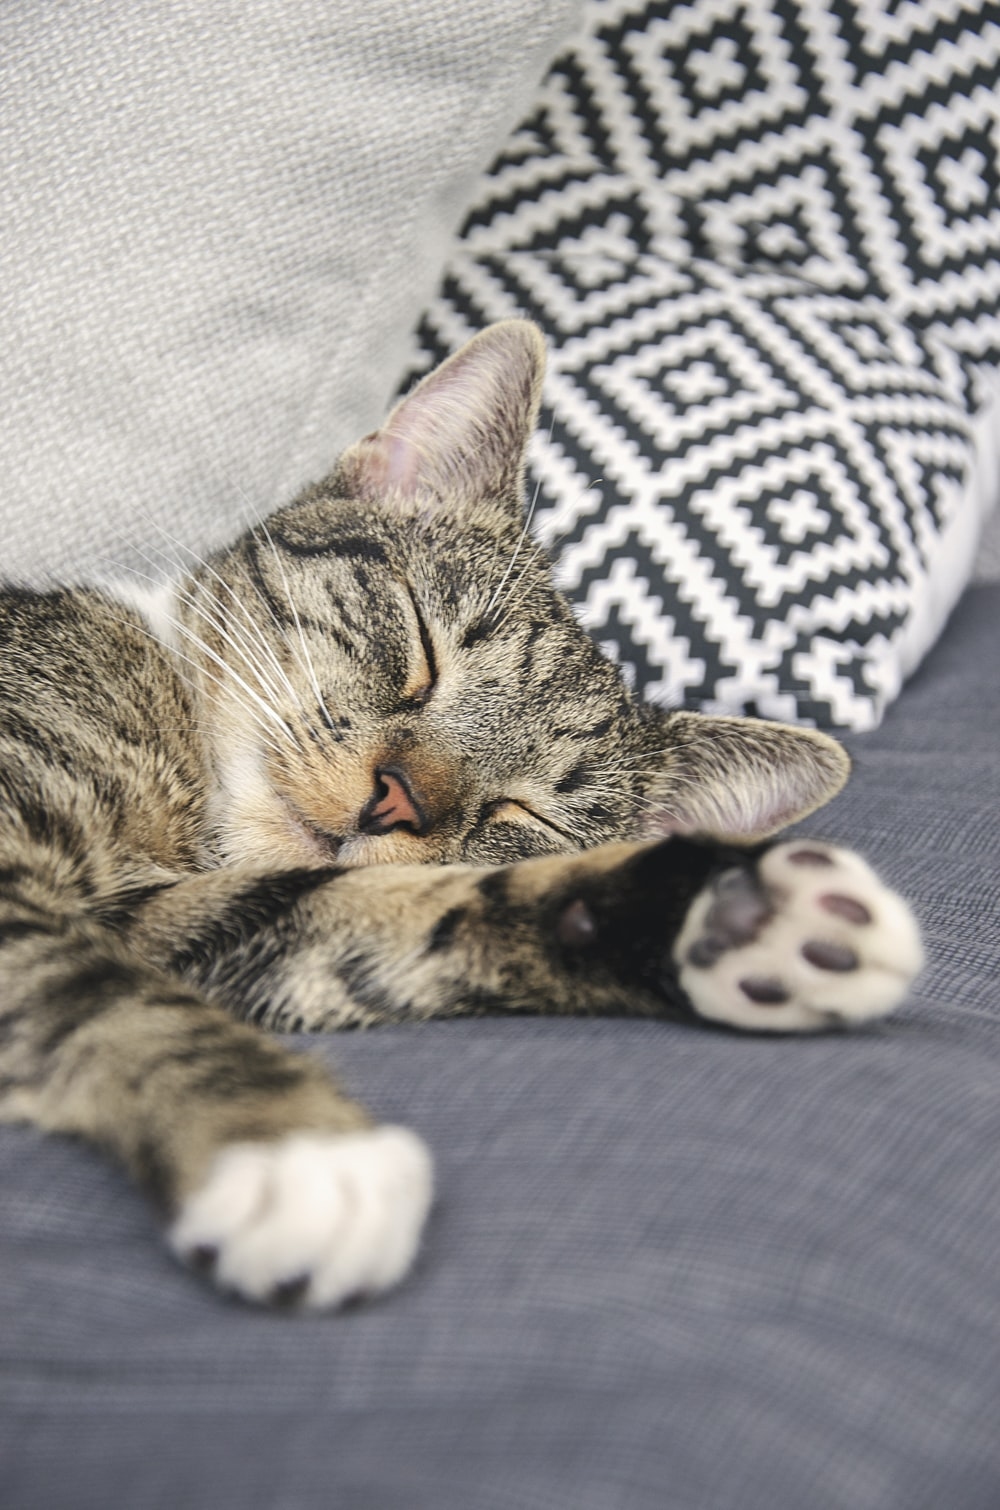 brown tabby cat lying on white and black textile